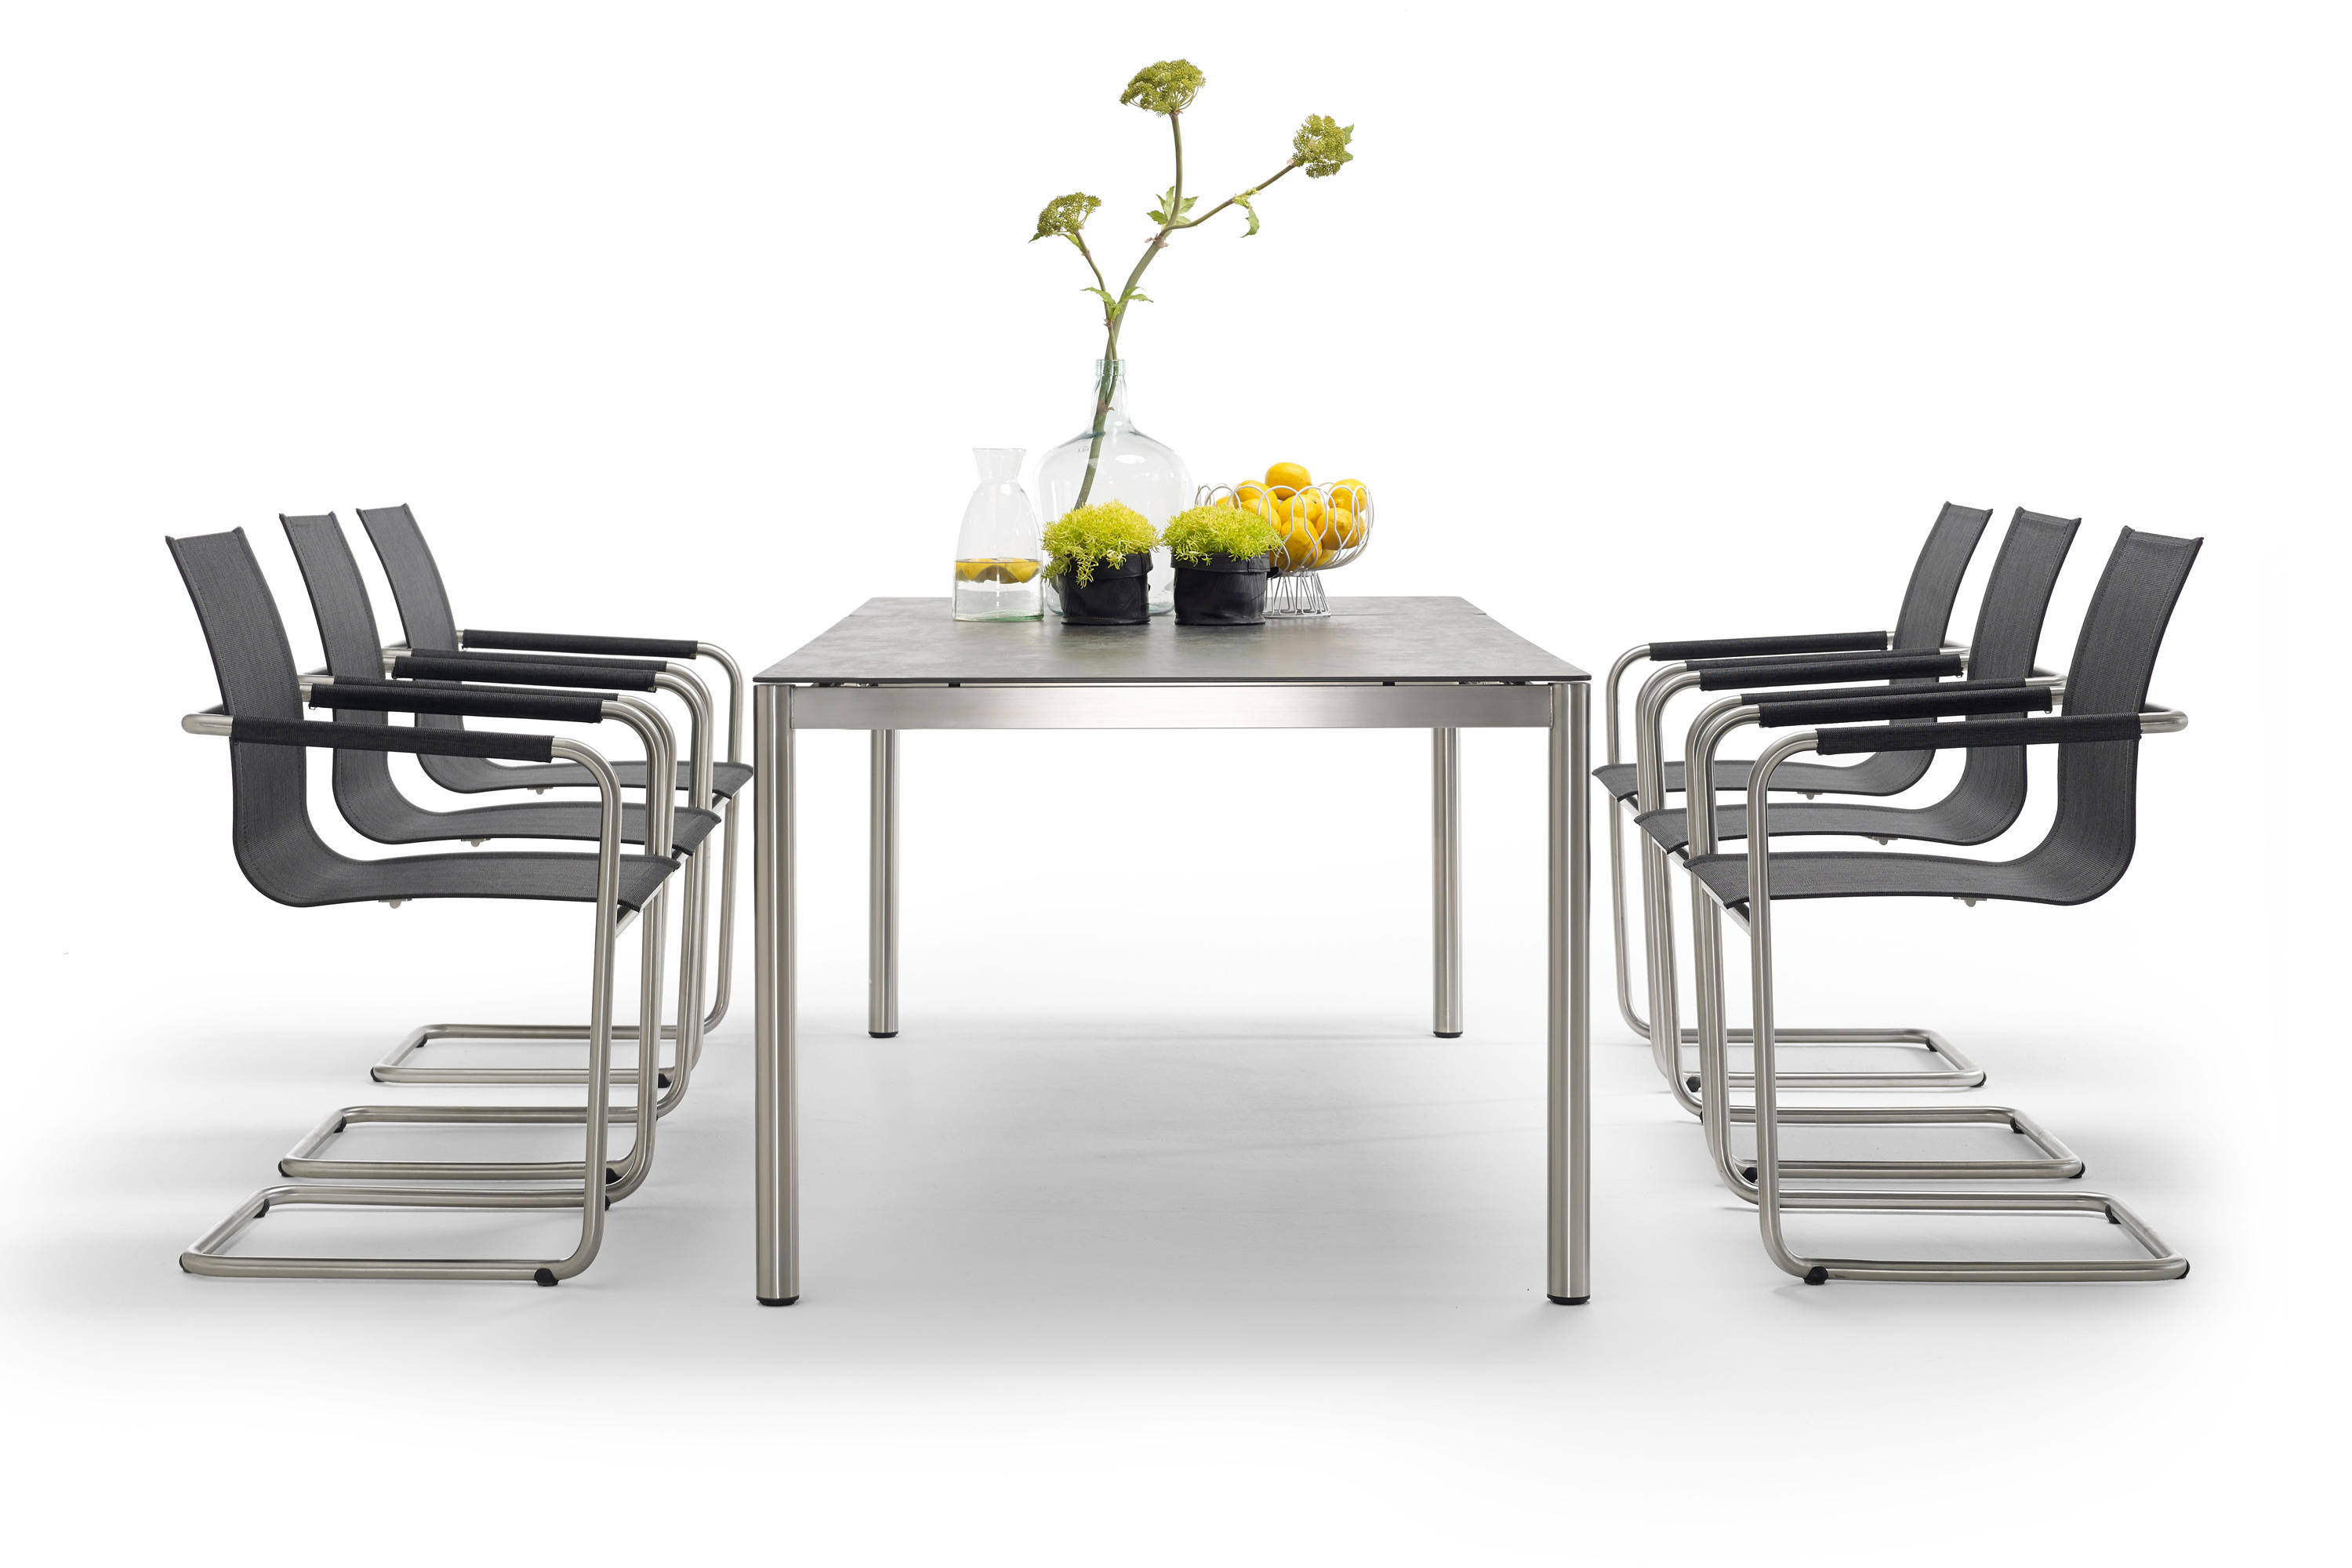 Trend Dining Table By Solpuri · Trend Dining Table By Solpuri ... Pictures Gallery